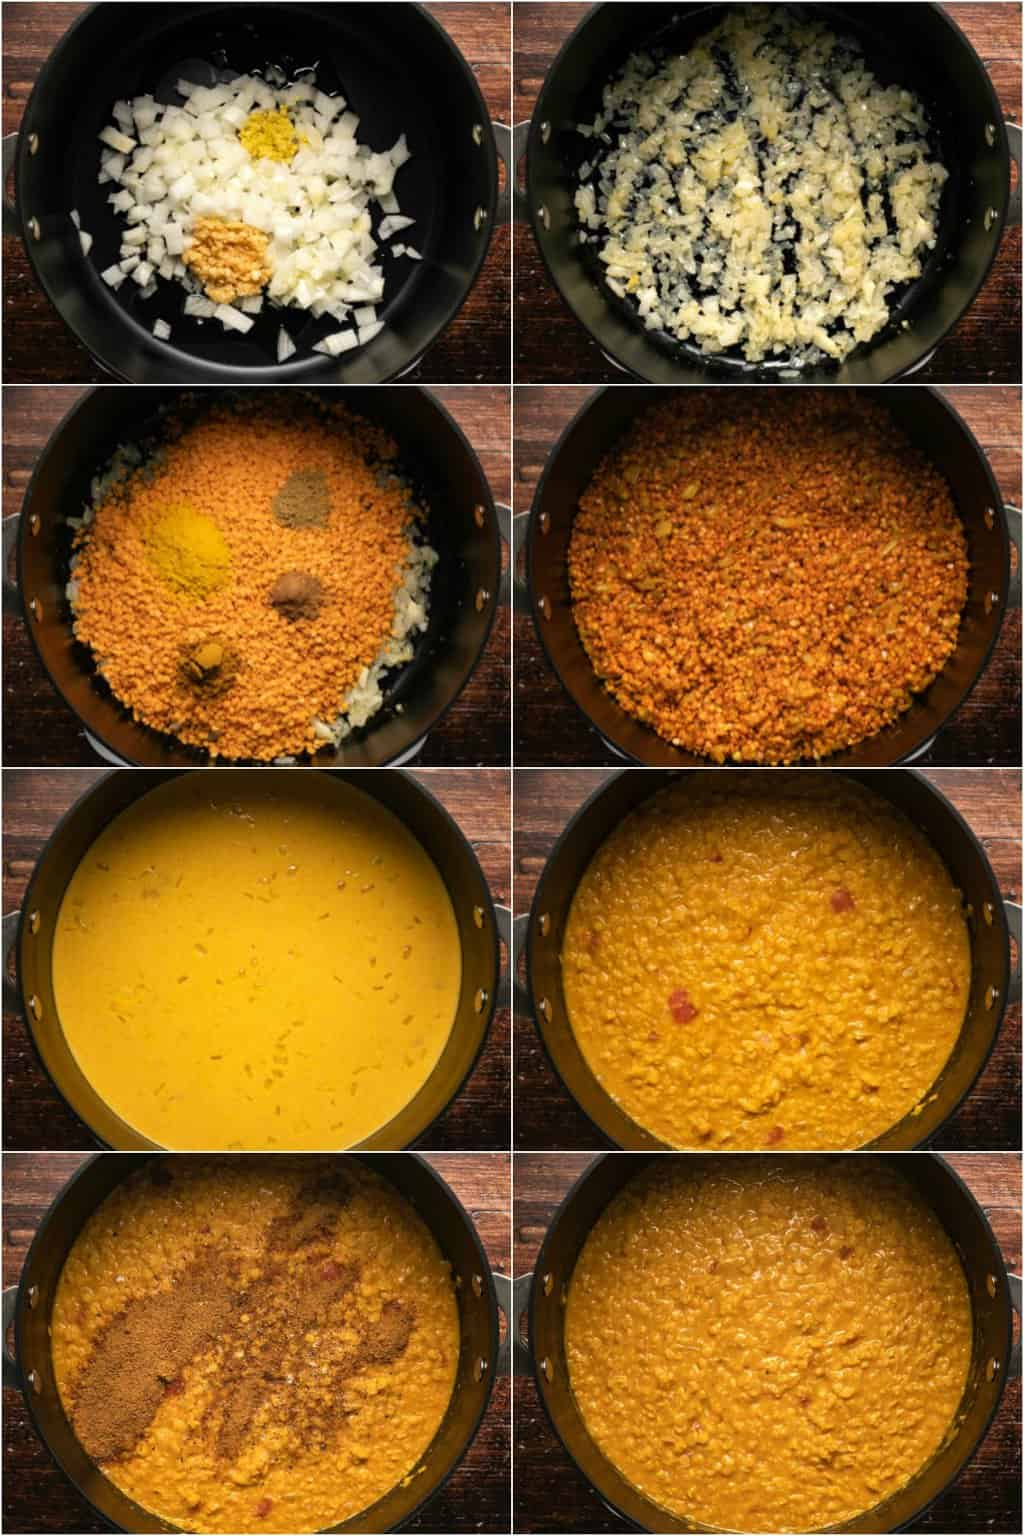 Step by step process photo collage of making a red lentil dal.